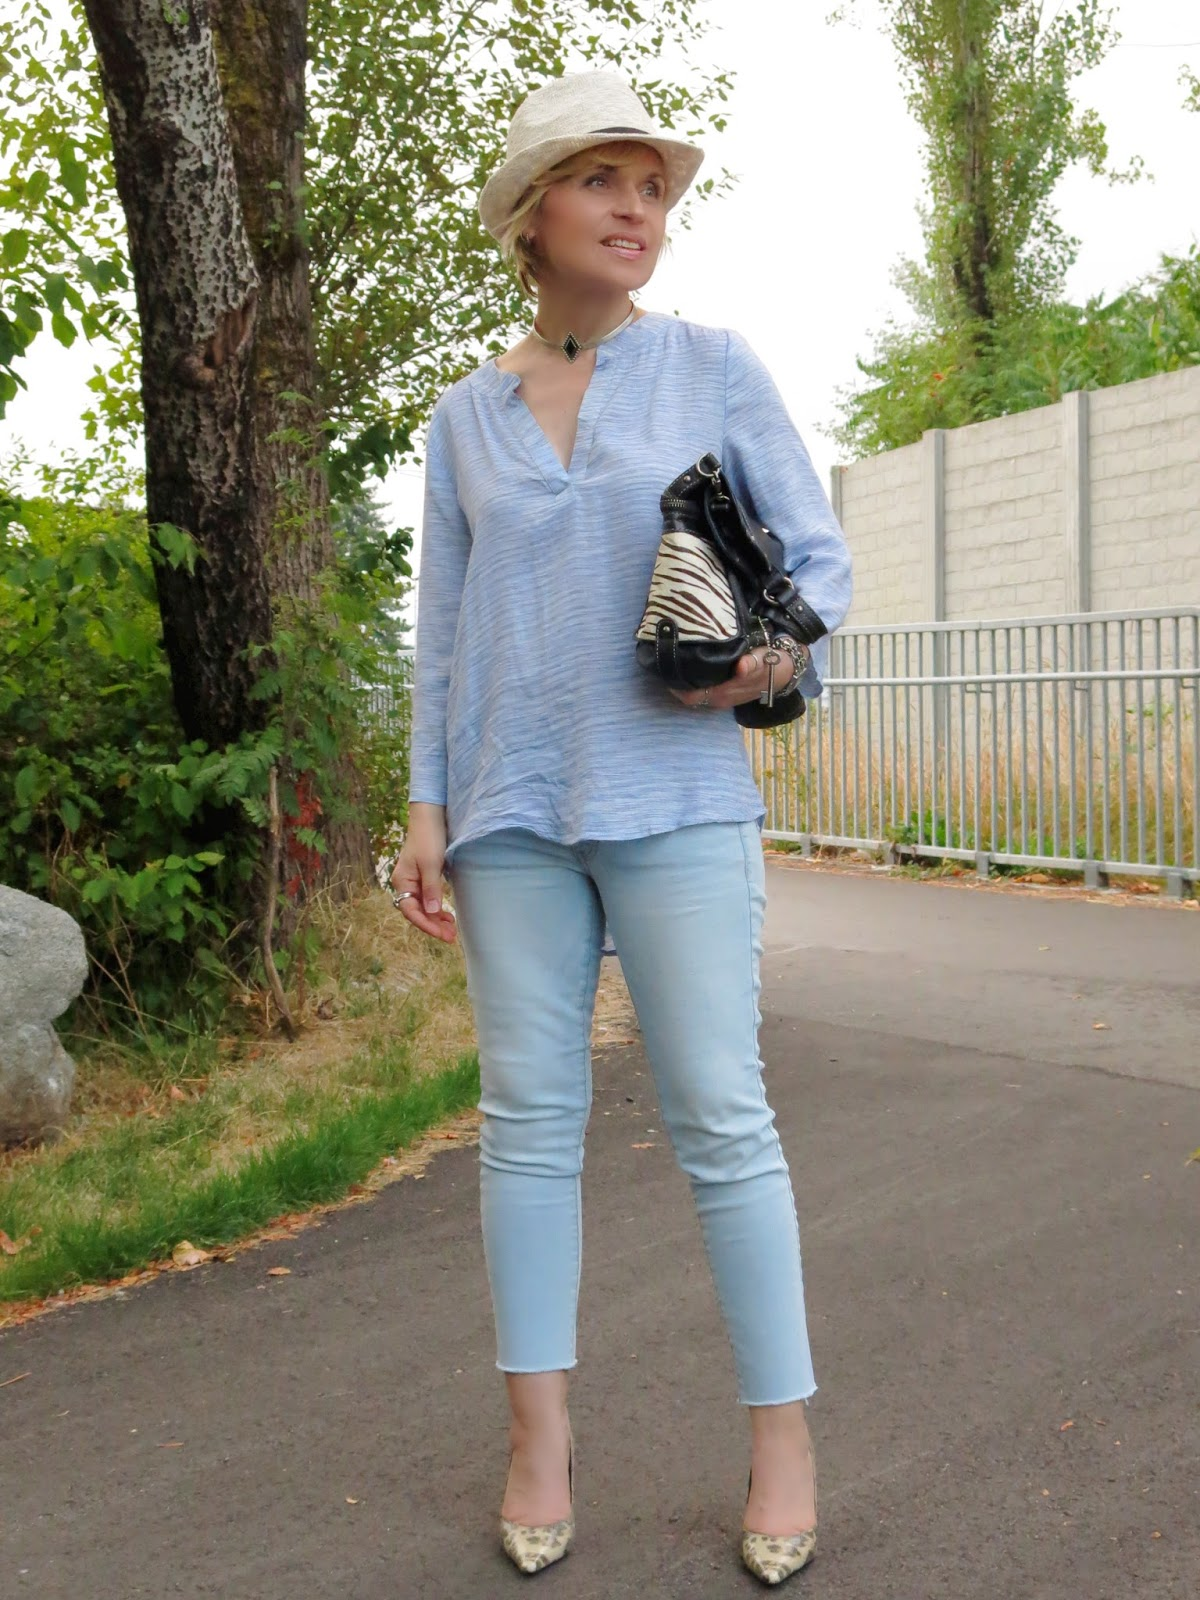 styling light-wash skinny jeans with a tunic, snake-print pumps, and a fedora